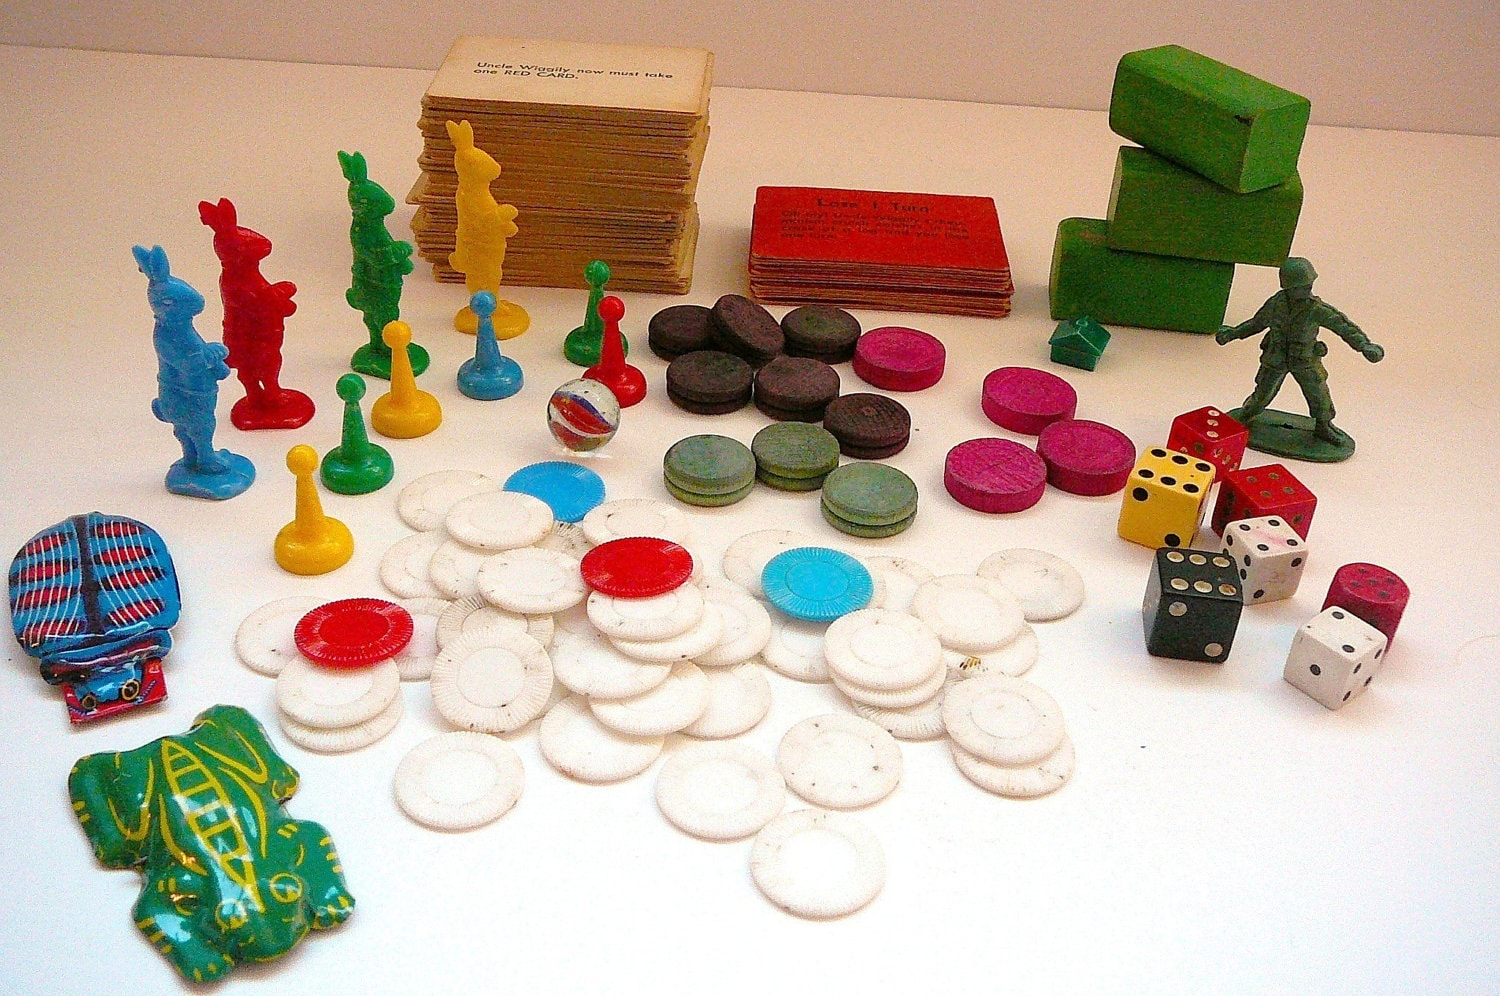 Vintage Game Pieces Board Game Tokens Dice